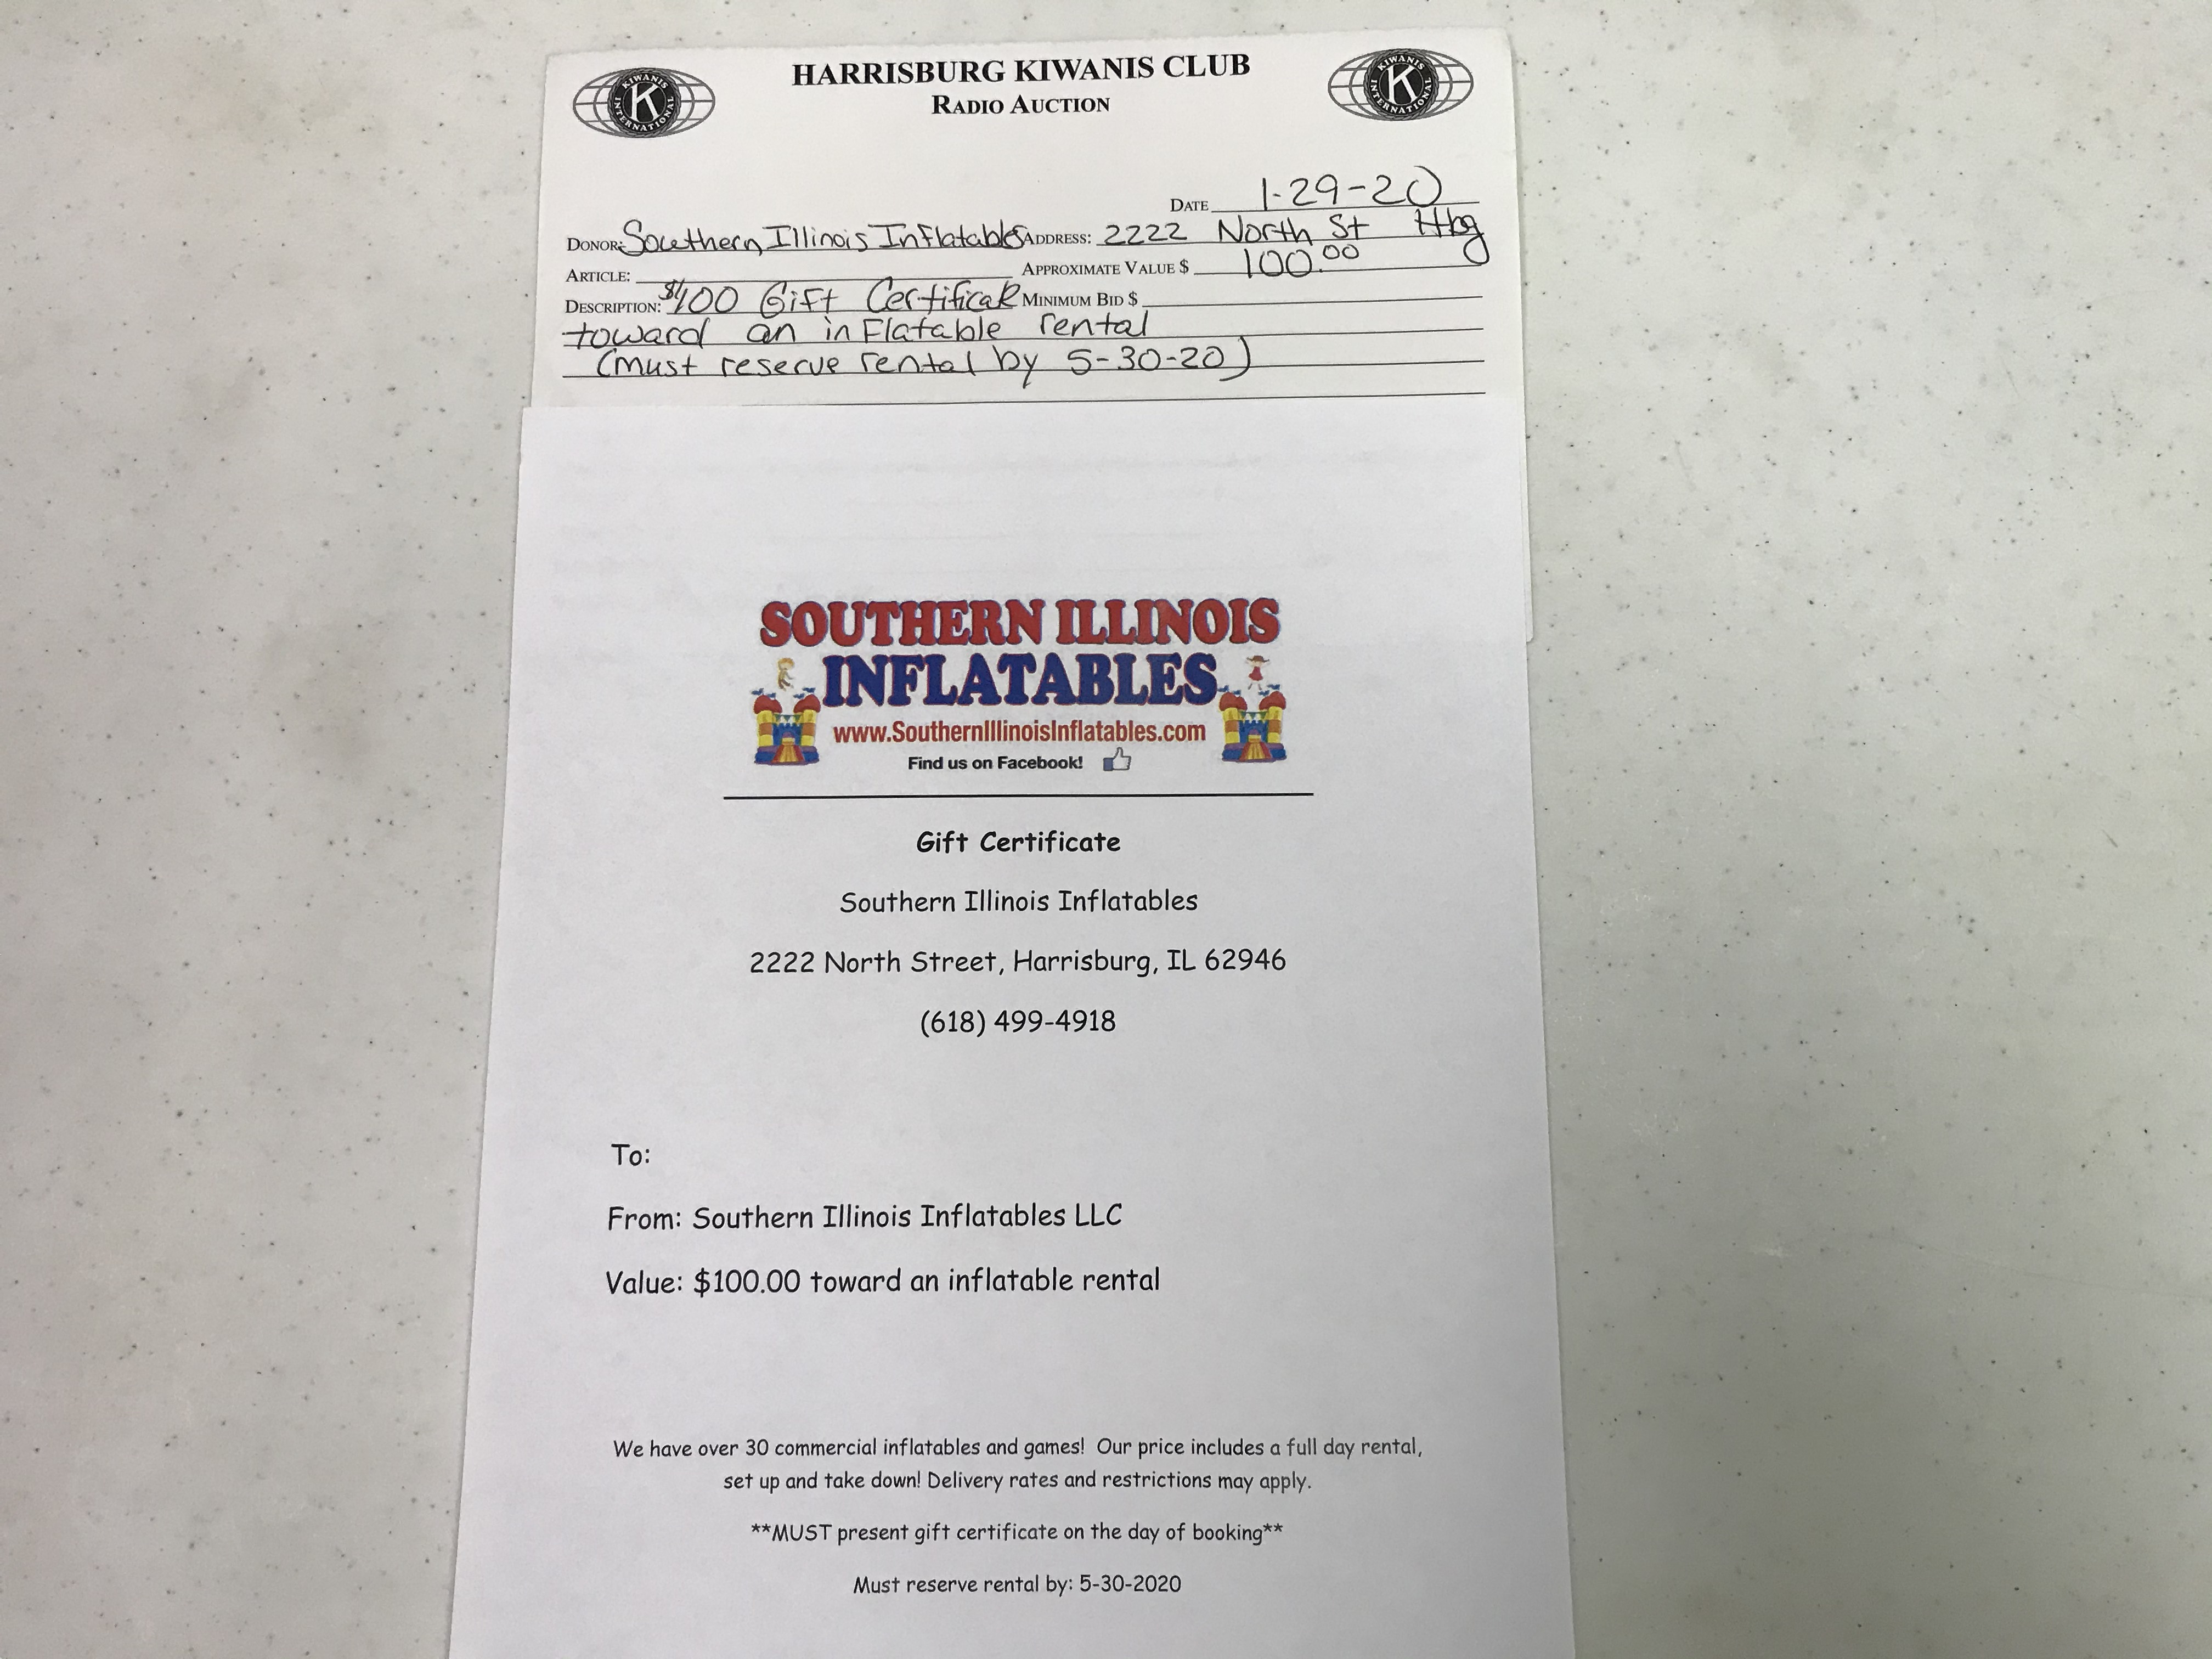 Item 336 - Southern Illinois Inflatables $100 Gift Certificate towards inflatable rental